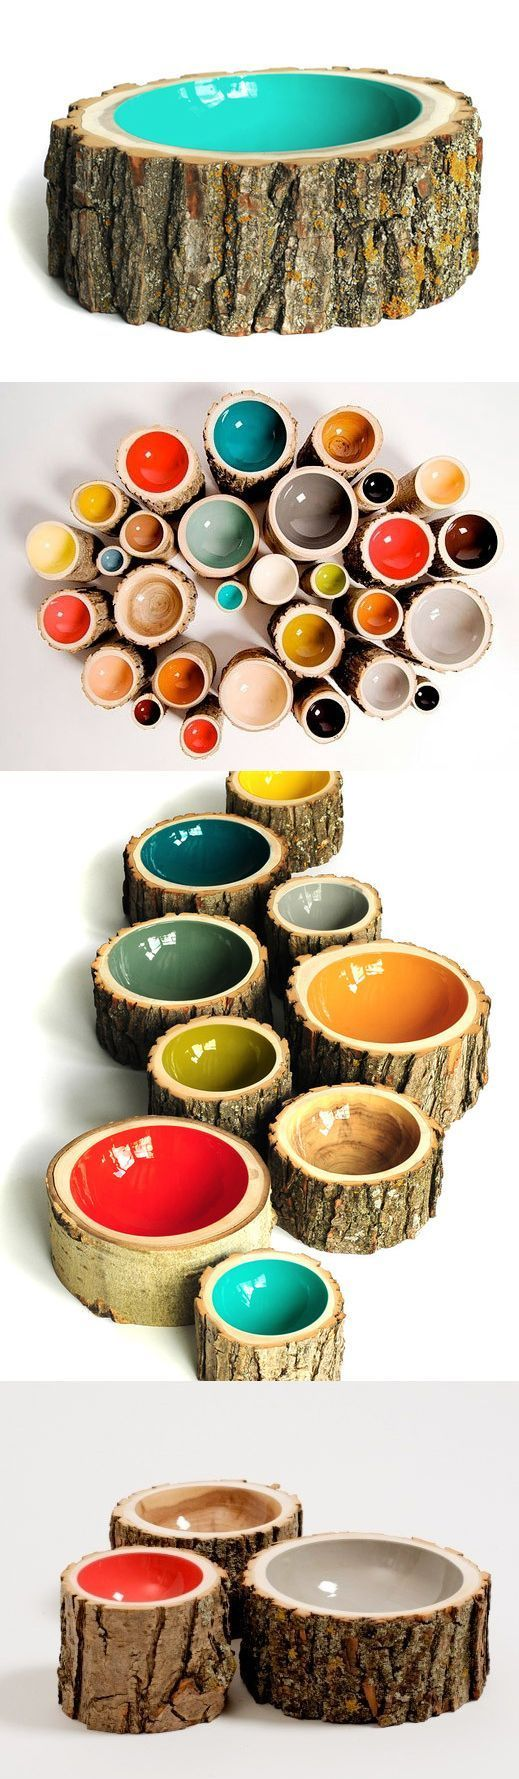 Nifty Tree Log Bowls - Reclaimed & Re-purposed from Fallen tree branches and trunks & turned into beautiful decorative bowls with glossy painted centers.